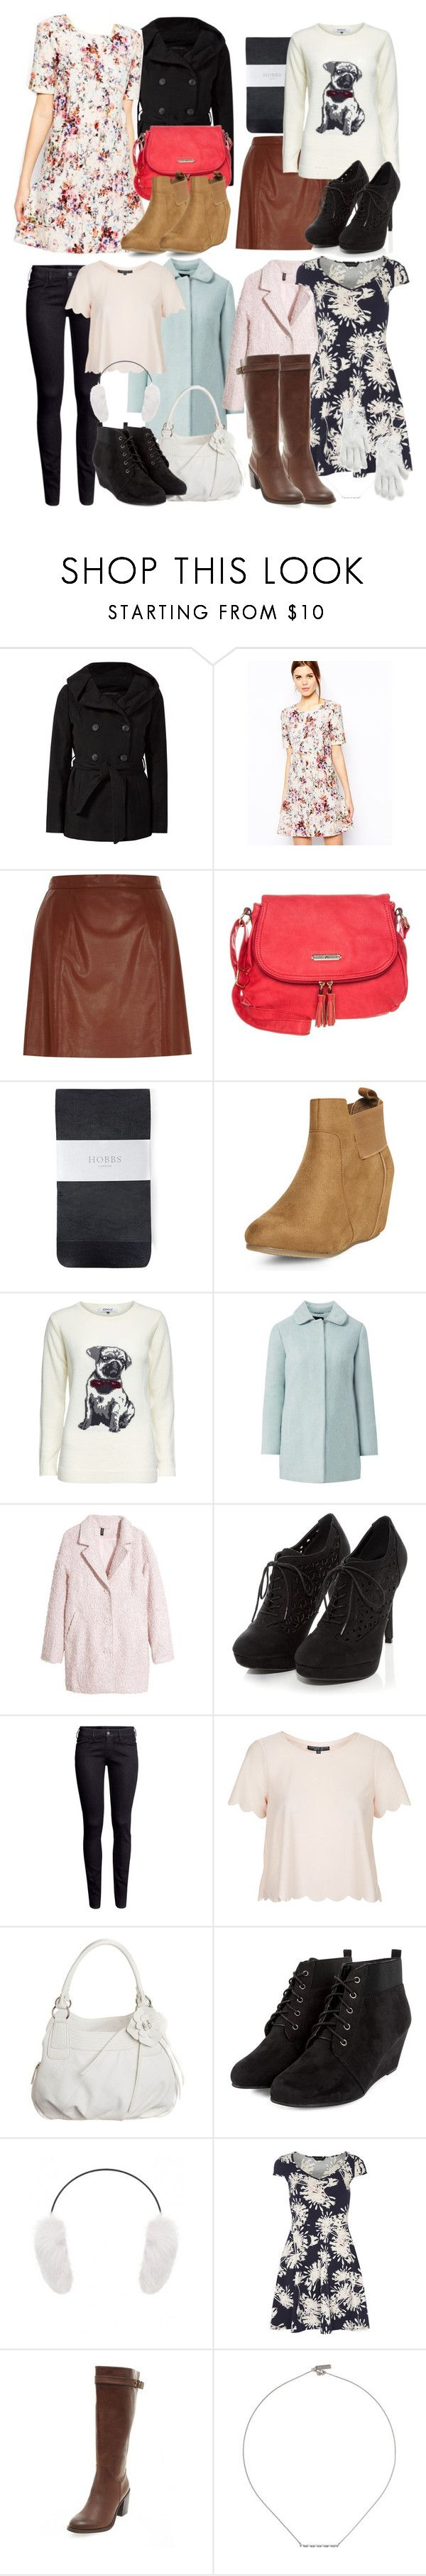 Lydia Inspired UK Friendly Trip Outfits by veterization on Polyvore featuring Warehouse, Dorothy Perkins, ONLY, Topshop, Jumpo, H&M, Hobbs, Anna Field, MANGO and Yves Salomon